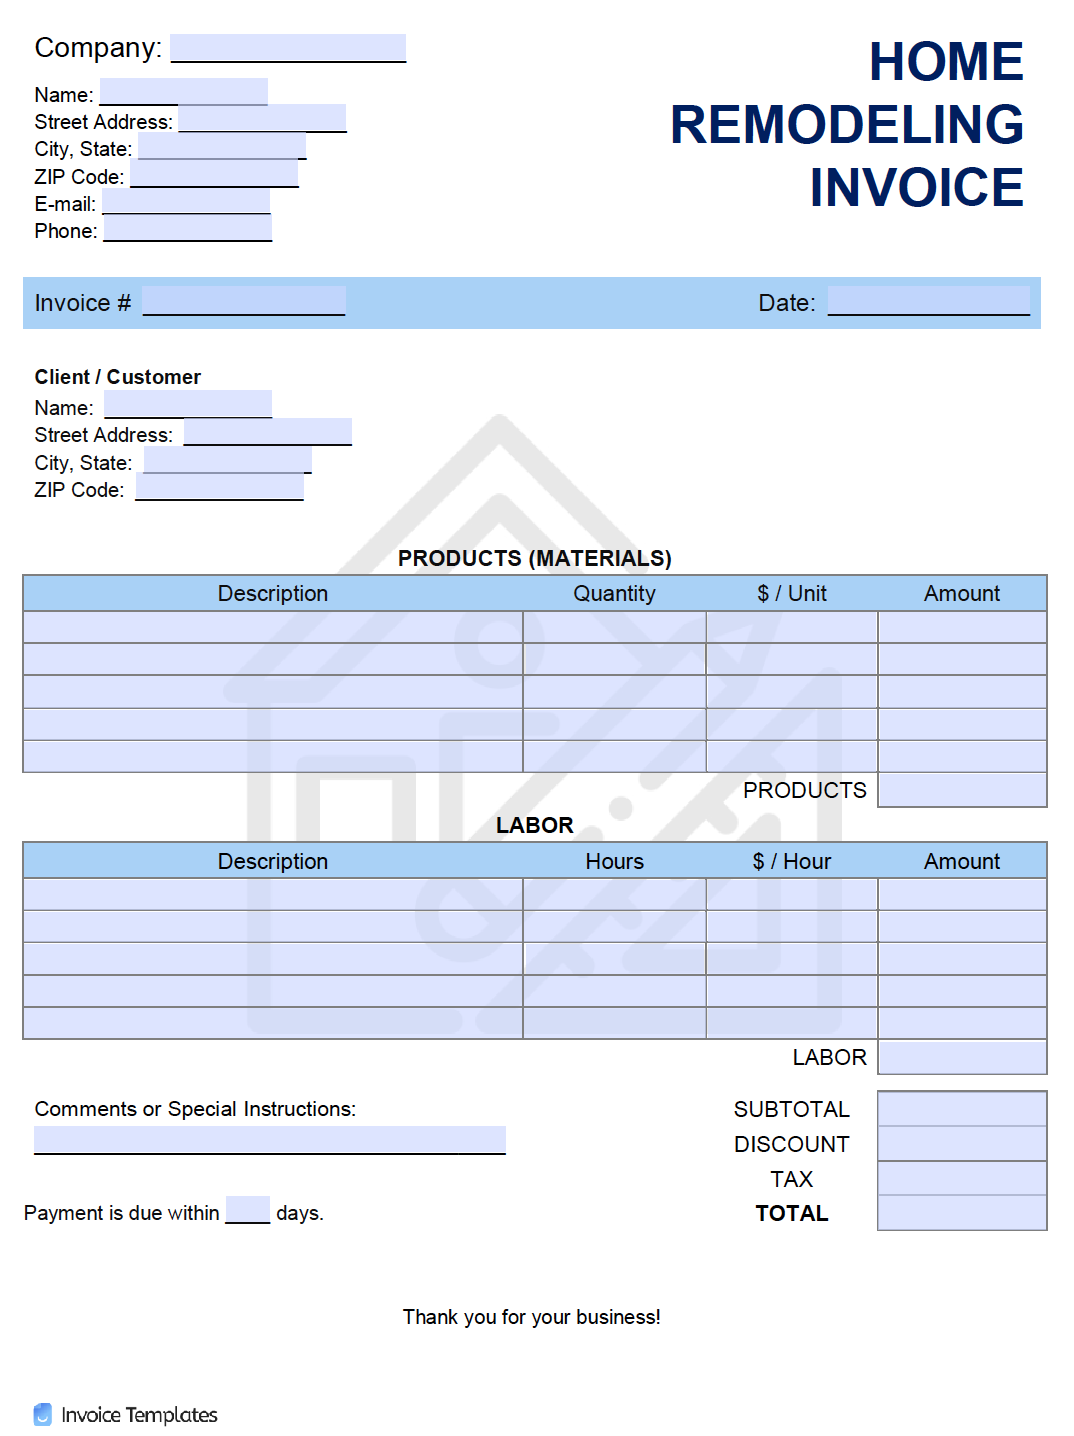 Free Home Remodeling Invoice Template Pdf Word Excel